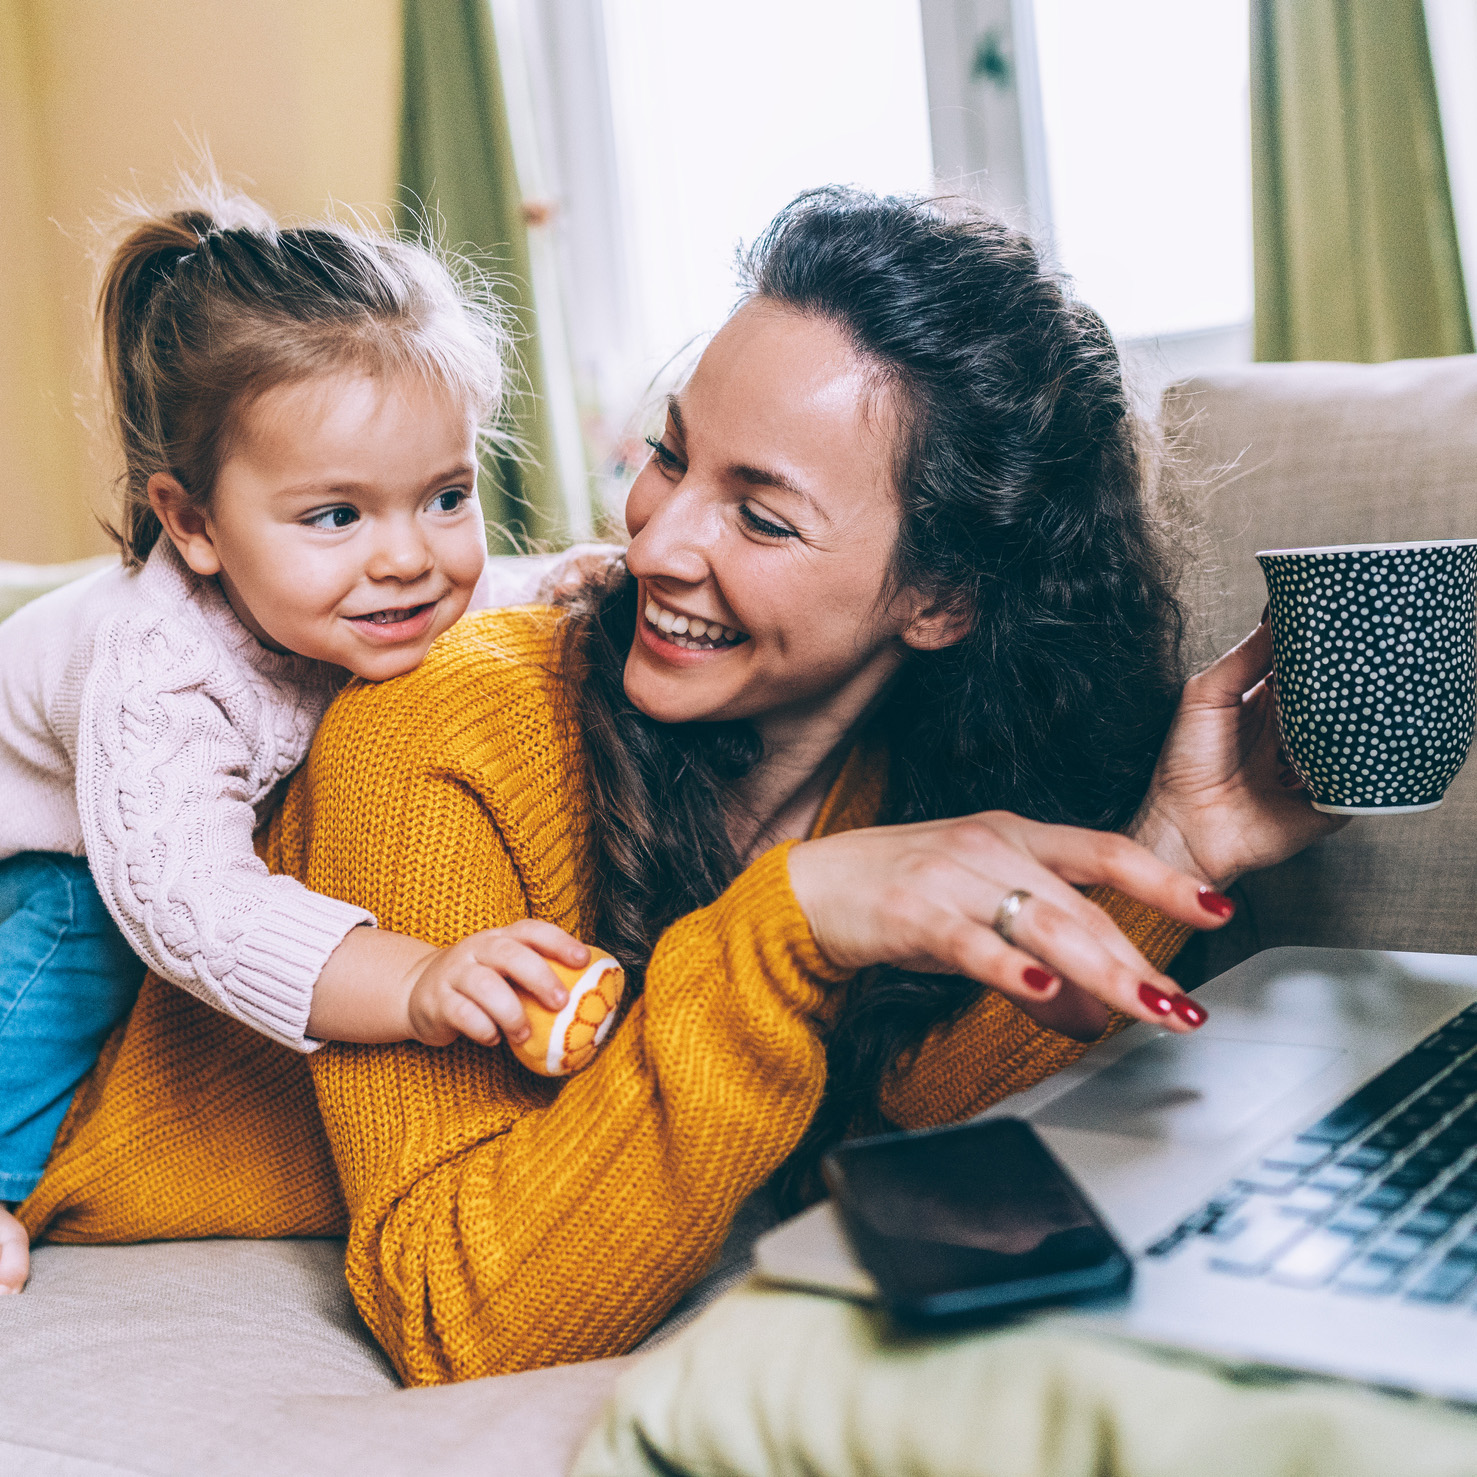 Young daughter distracting mother who is working from home